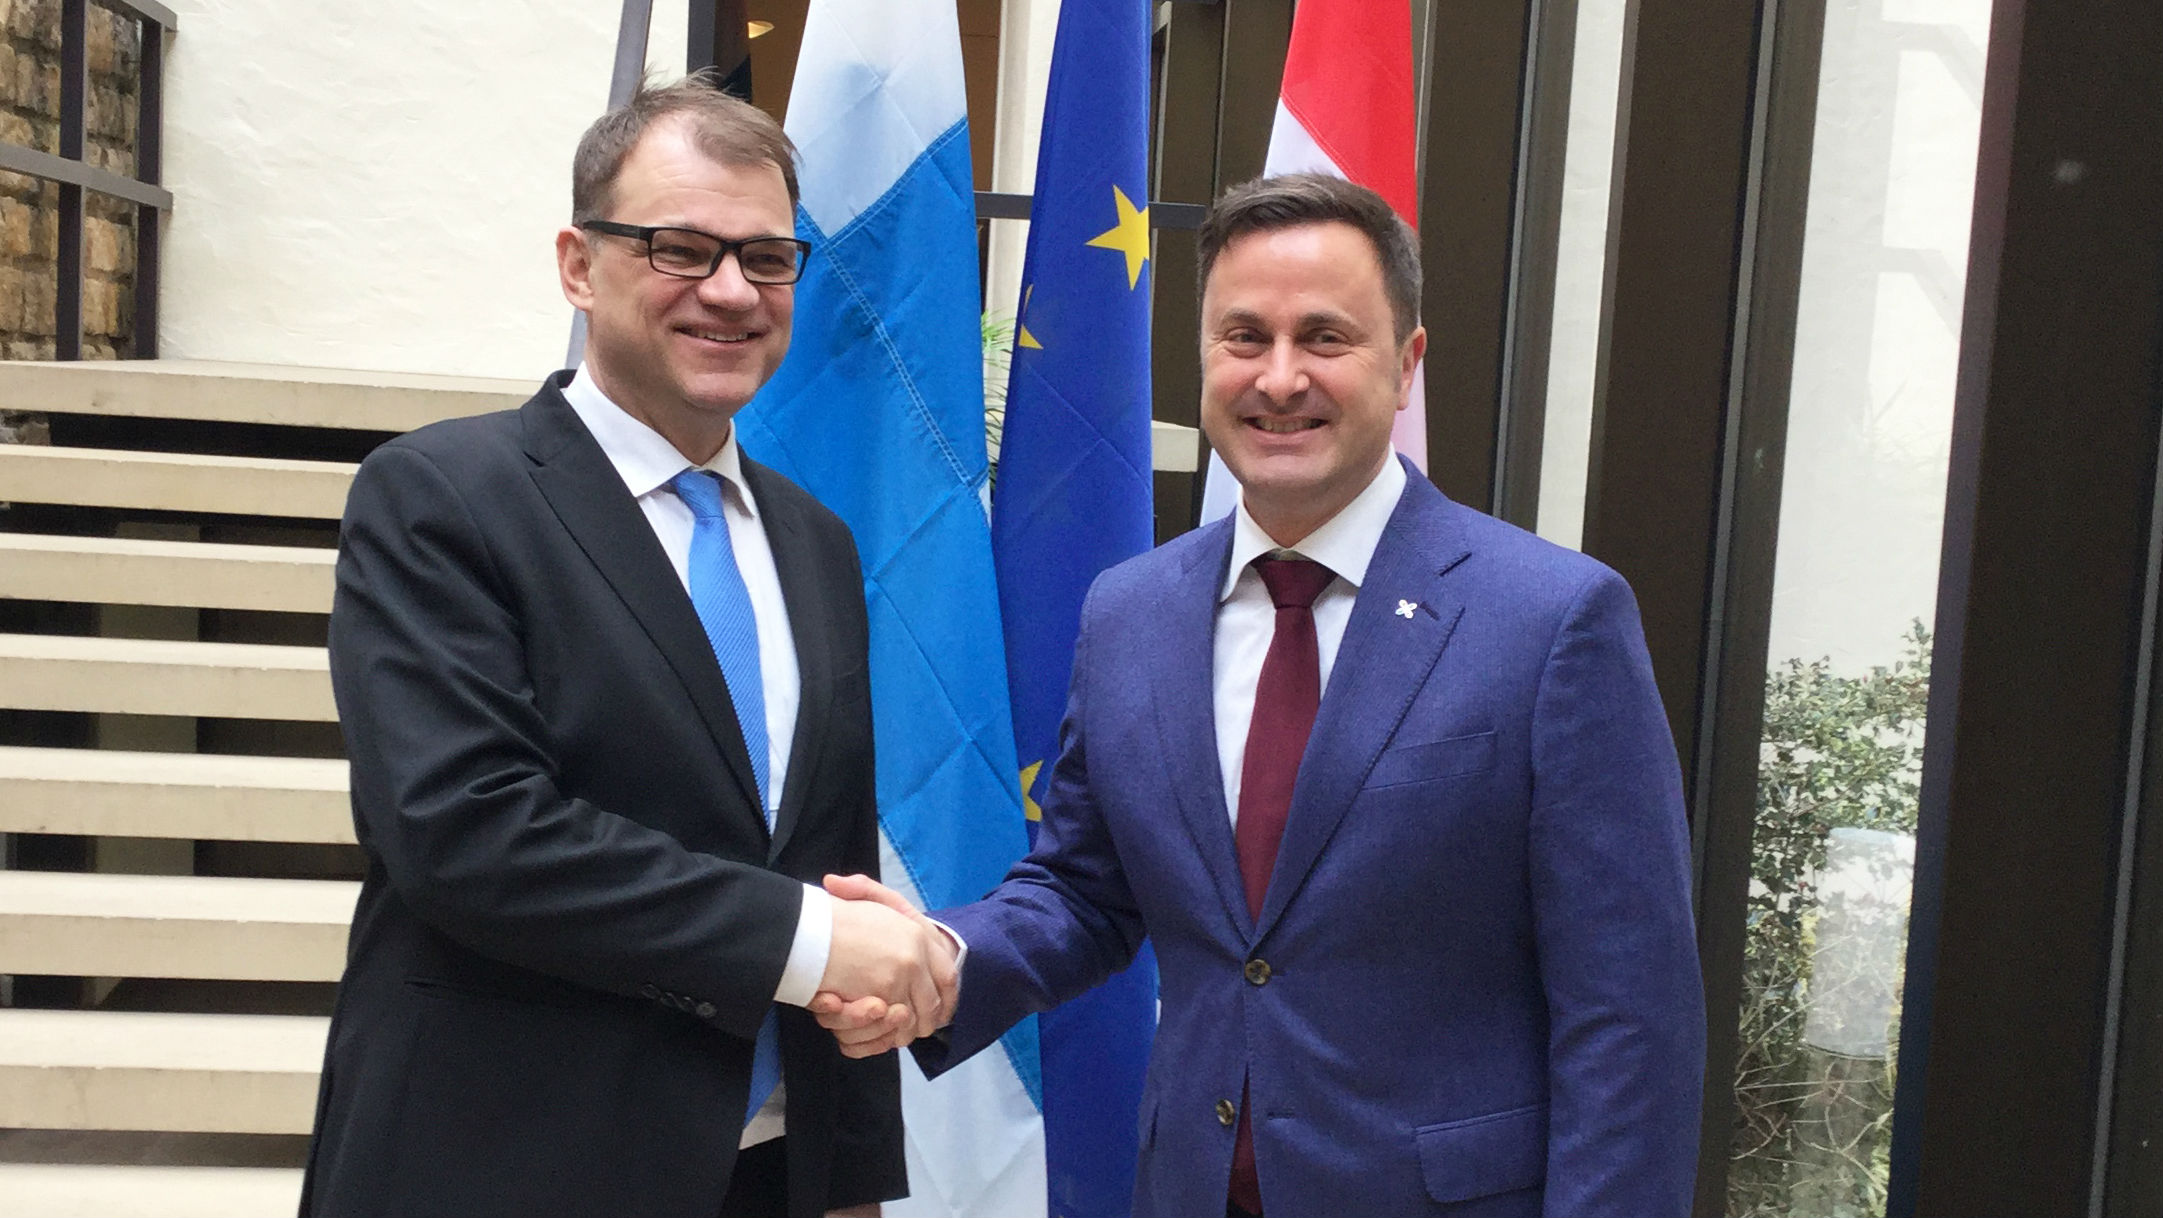 Prime Minister Sipilä held talks with Luxembourg Prime Minister Bettel